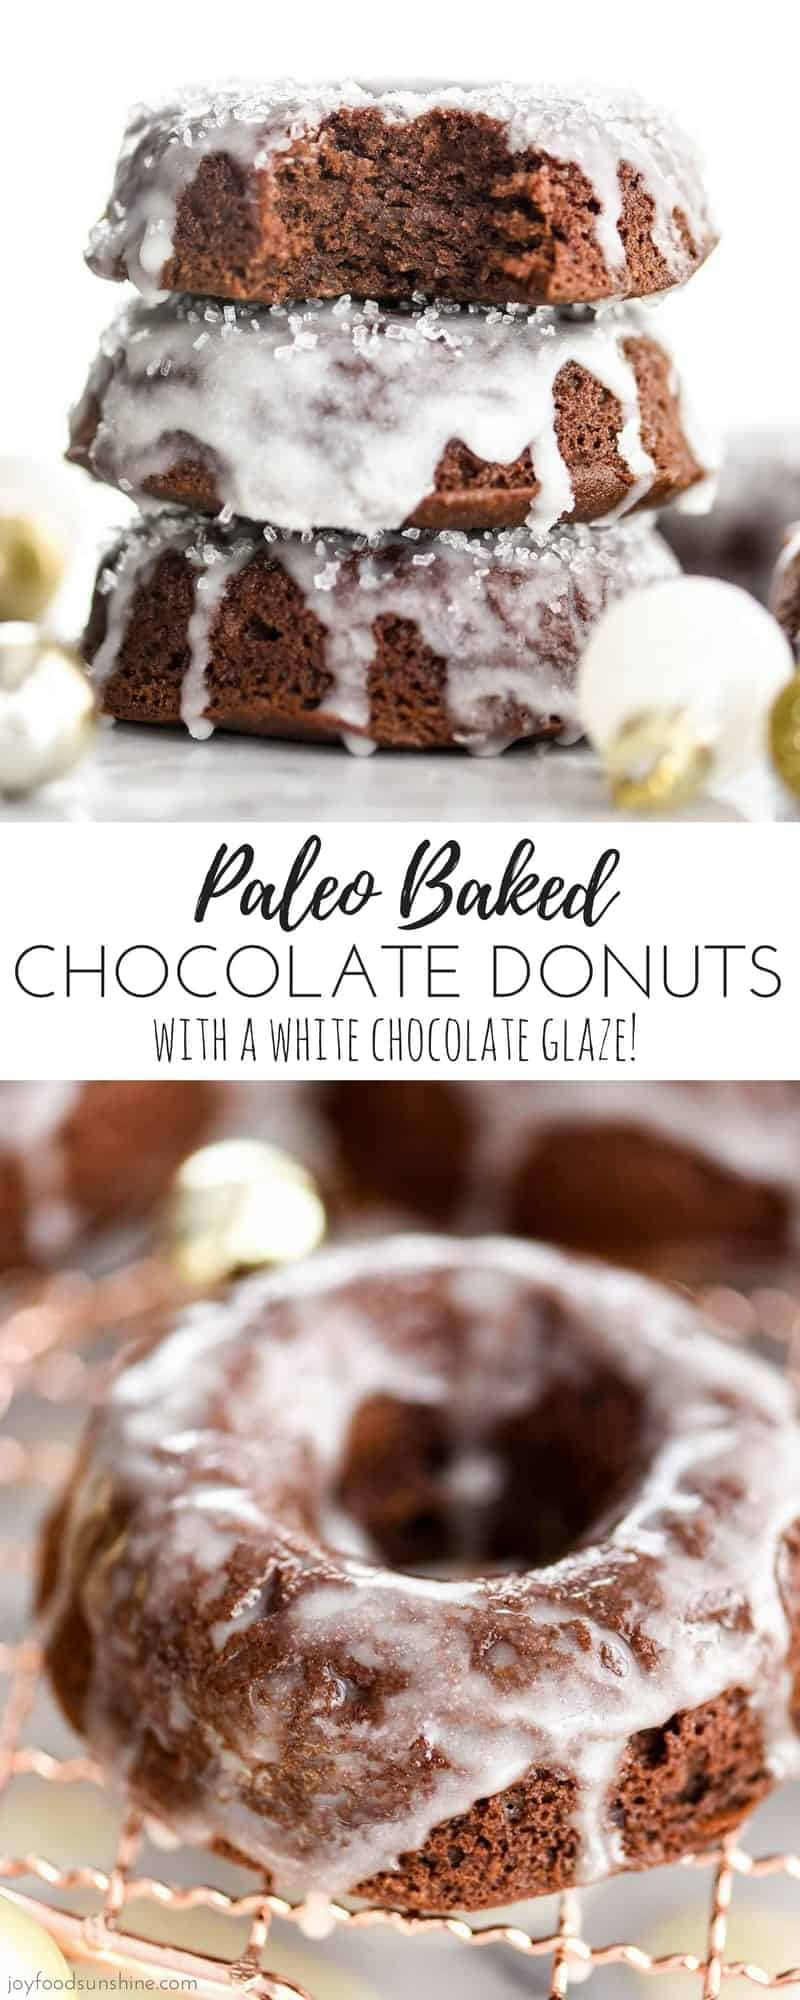 Paleo Baked Chocolate Donuts White Chocolate Glaze are a healthy yet indulgent breakfast recipe! They have the perfect texture and a rich chocolate flavor! Gluten-free, grain-free, & no refined sugar!